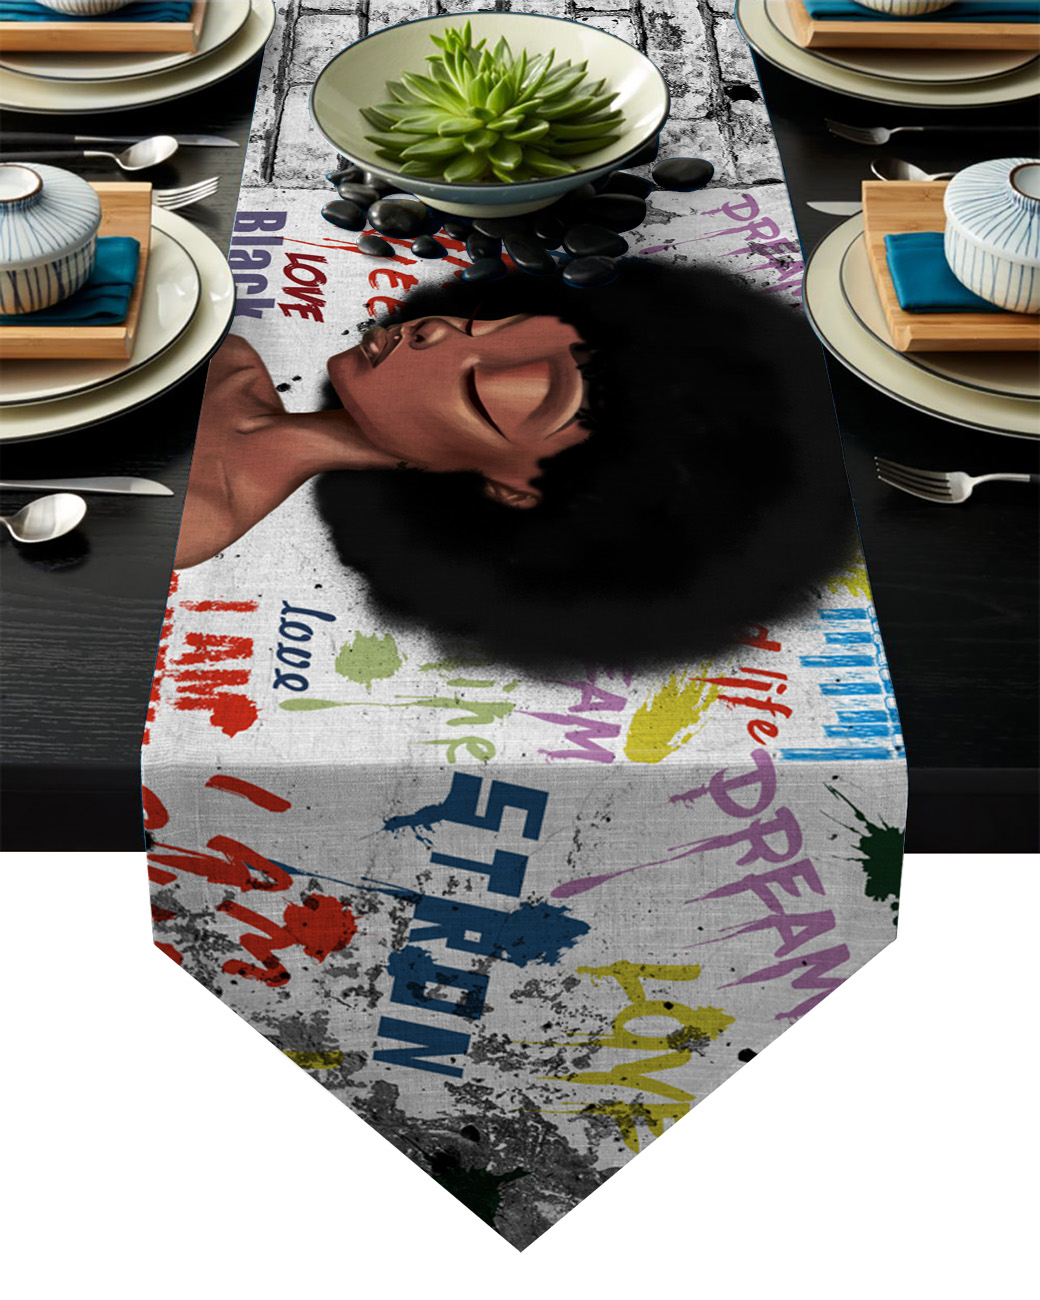 African Girl Street Graffiti Wall Table Runner Table Flag Home Party Decorative Tablecloth Table Runners